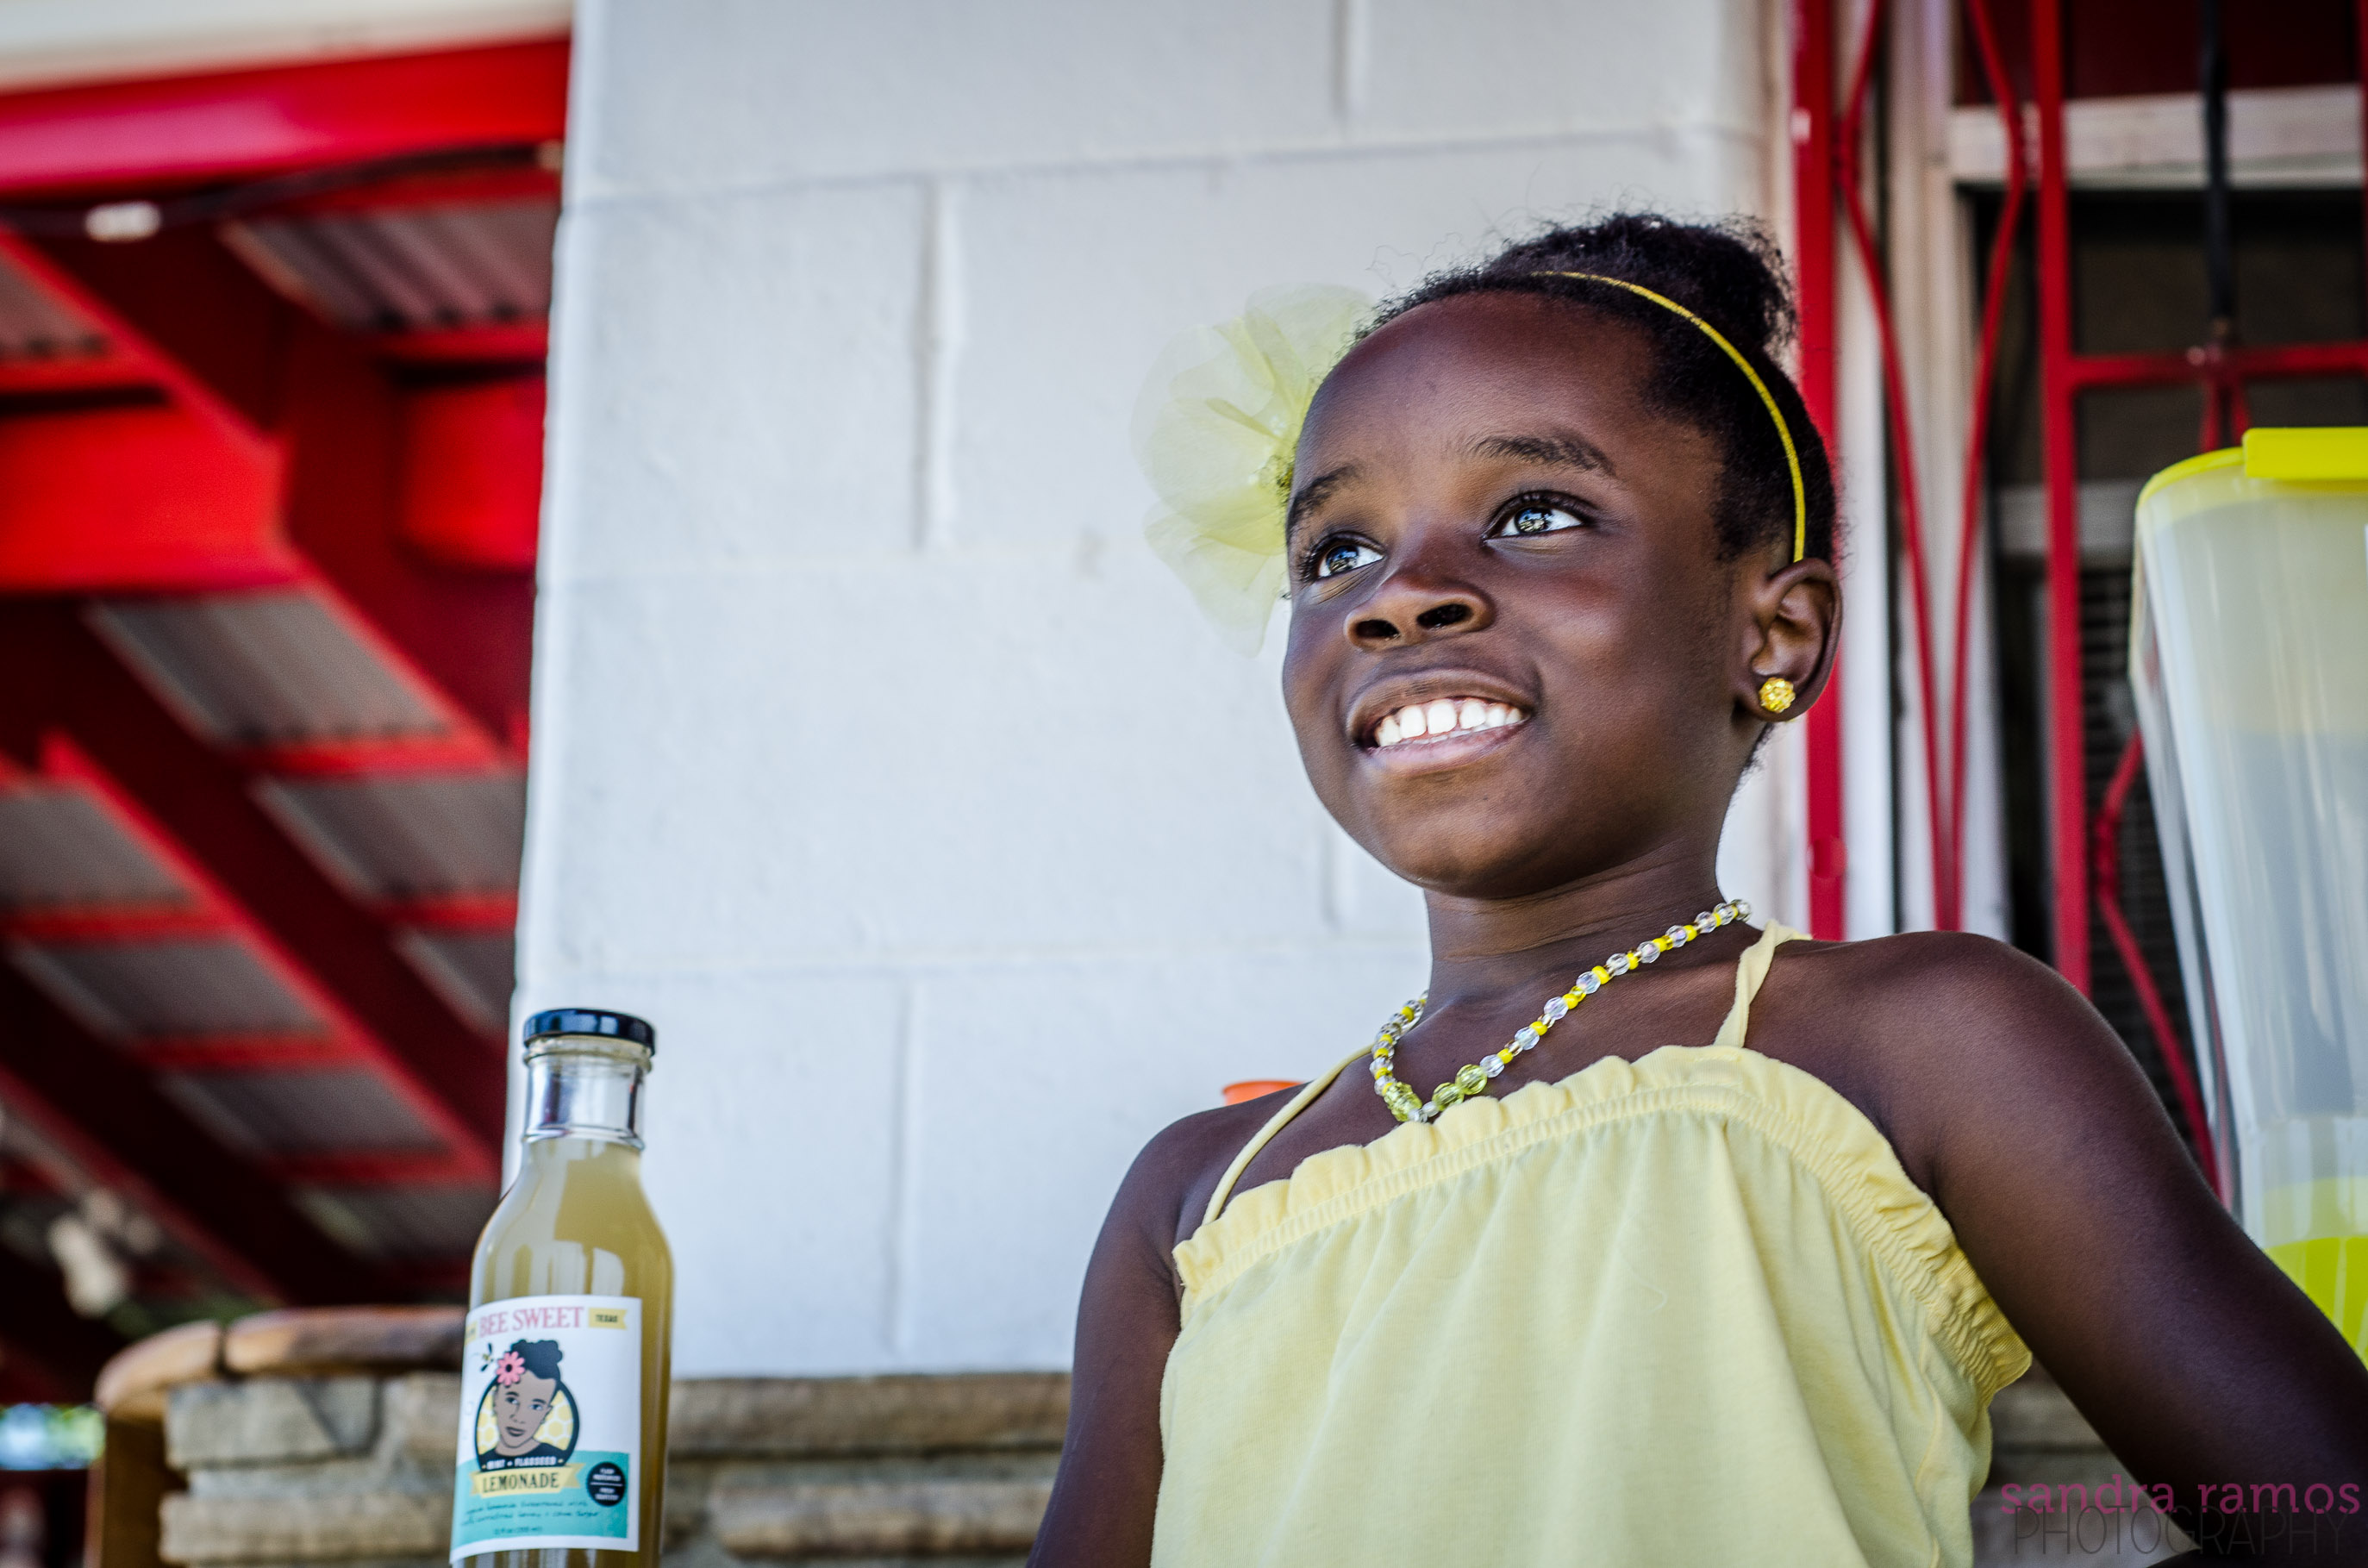 This 10-year-old girl got a $60k Shark Tank investment in her lemonade stand